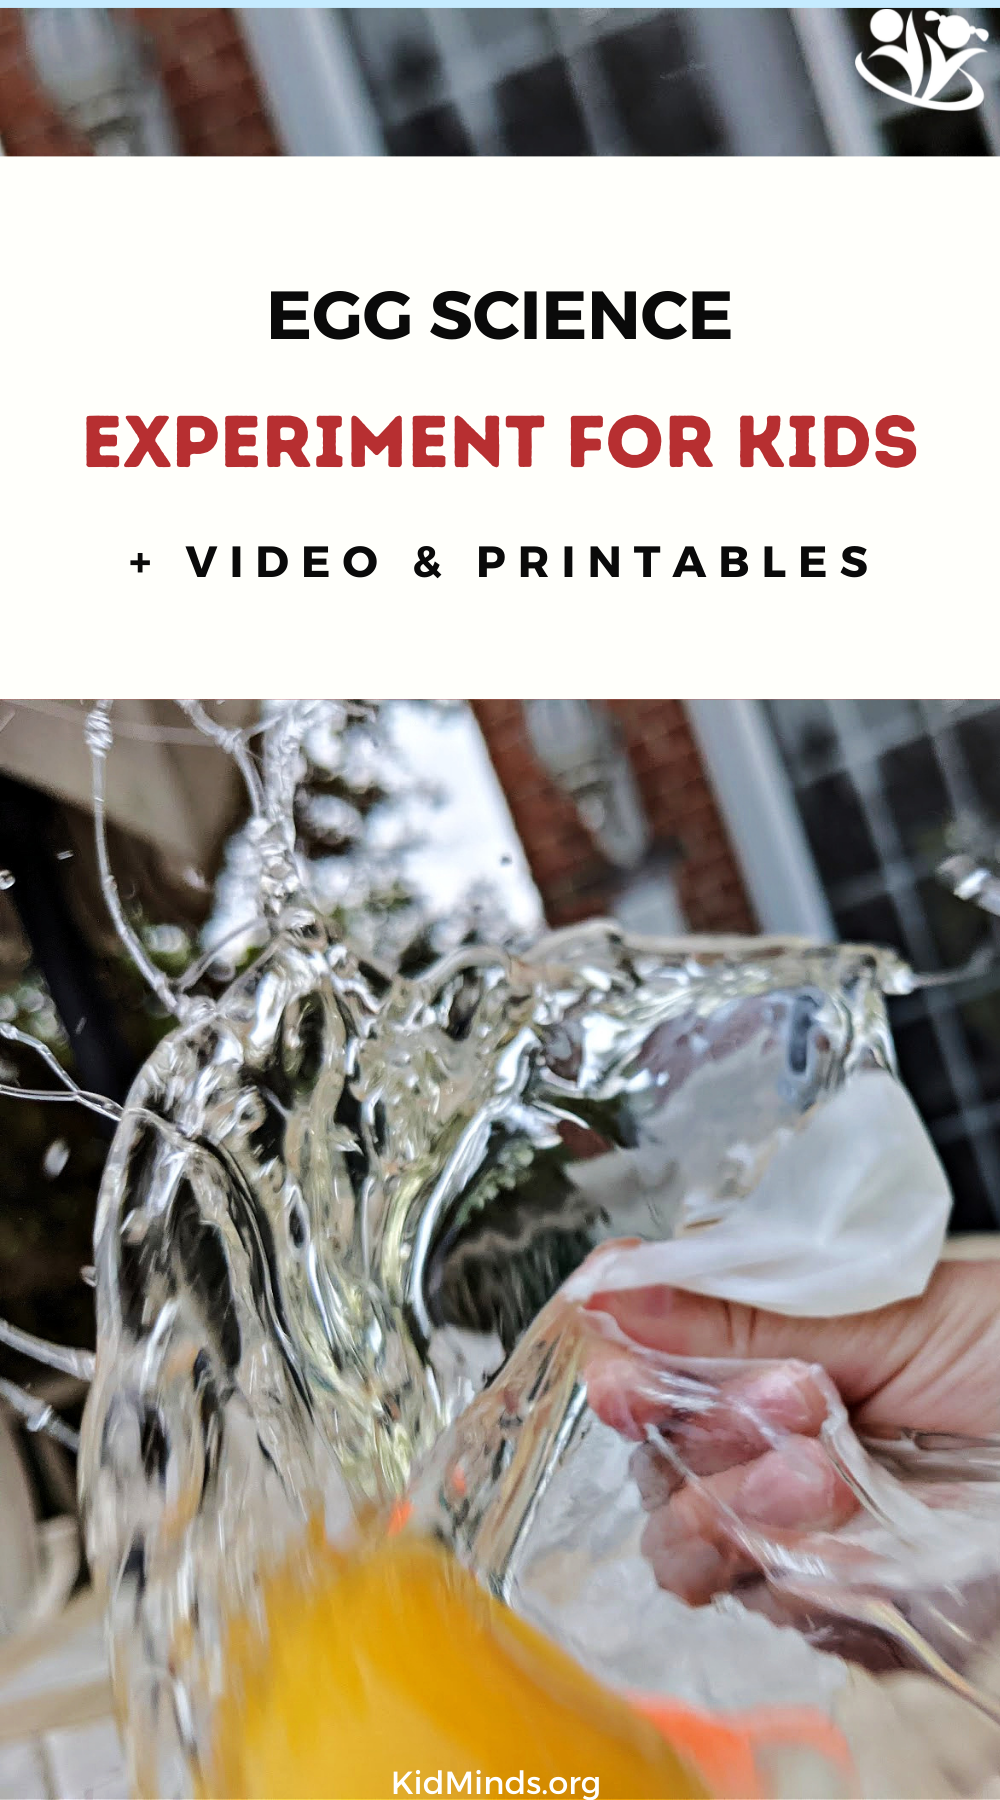 Whether you're looking for an easy #science activity, a spring-themed #experiment, some kitchen science, a hands-on #egg exploration, or a kid-friendly introduction to #chemistry, this one is for you!  #handsonlearning #kidsactivities #STEAM #calcium